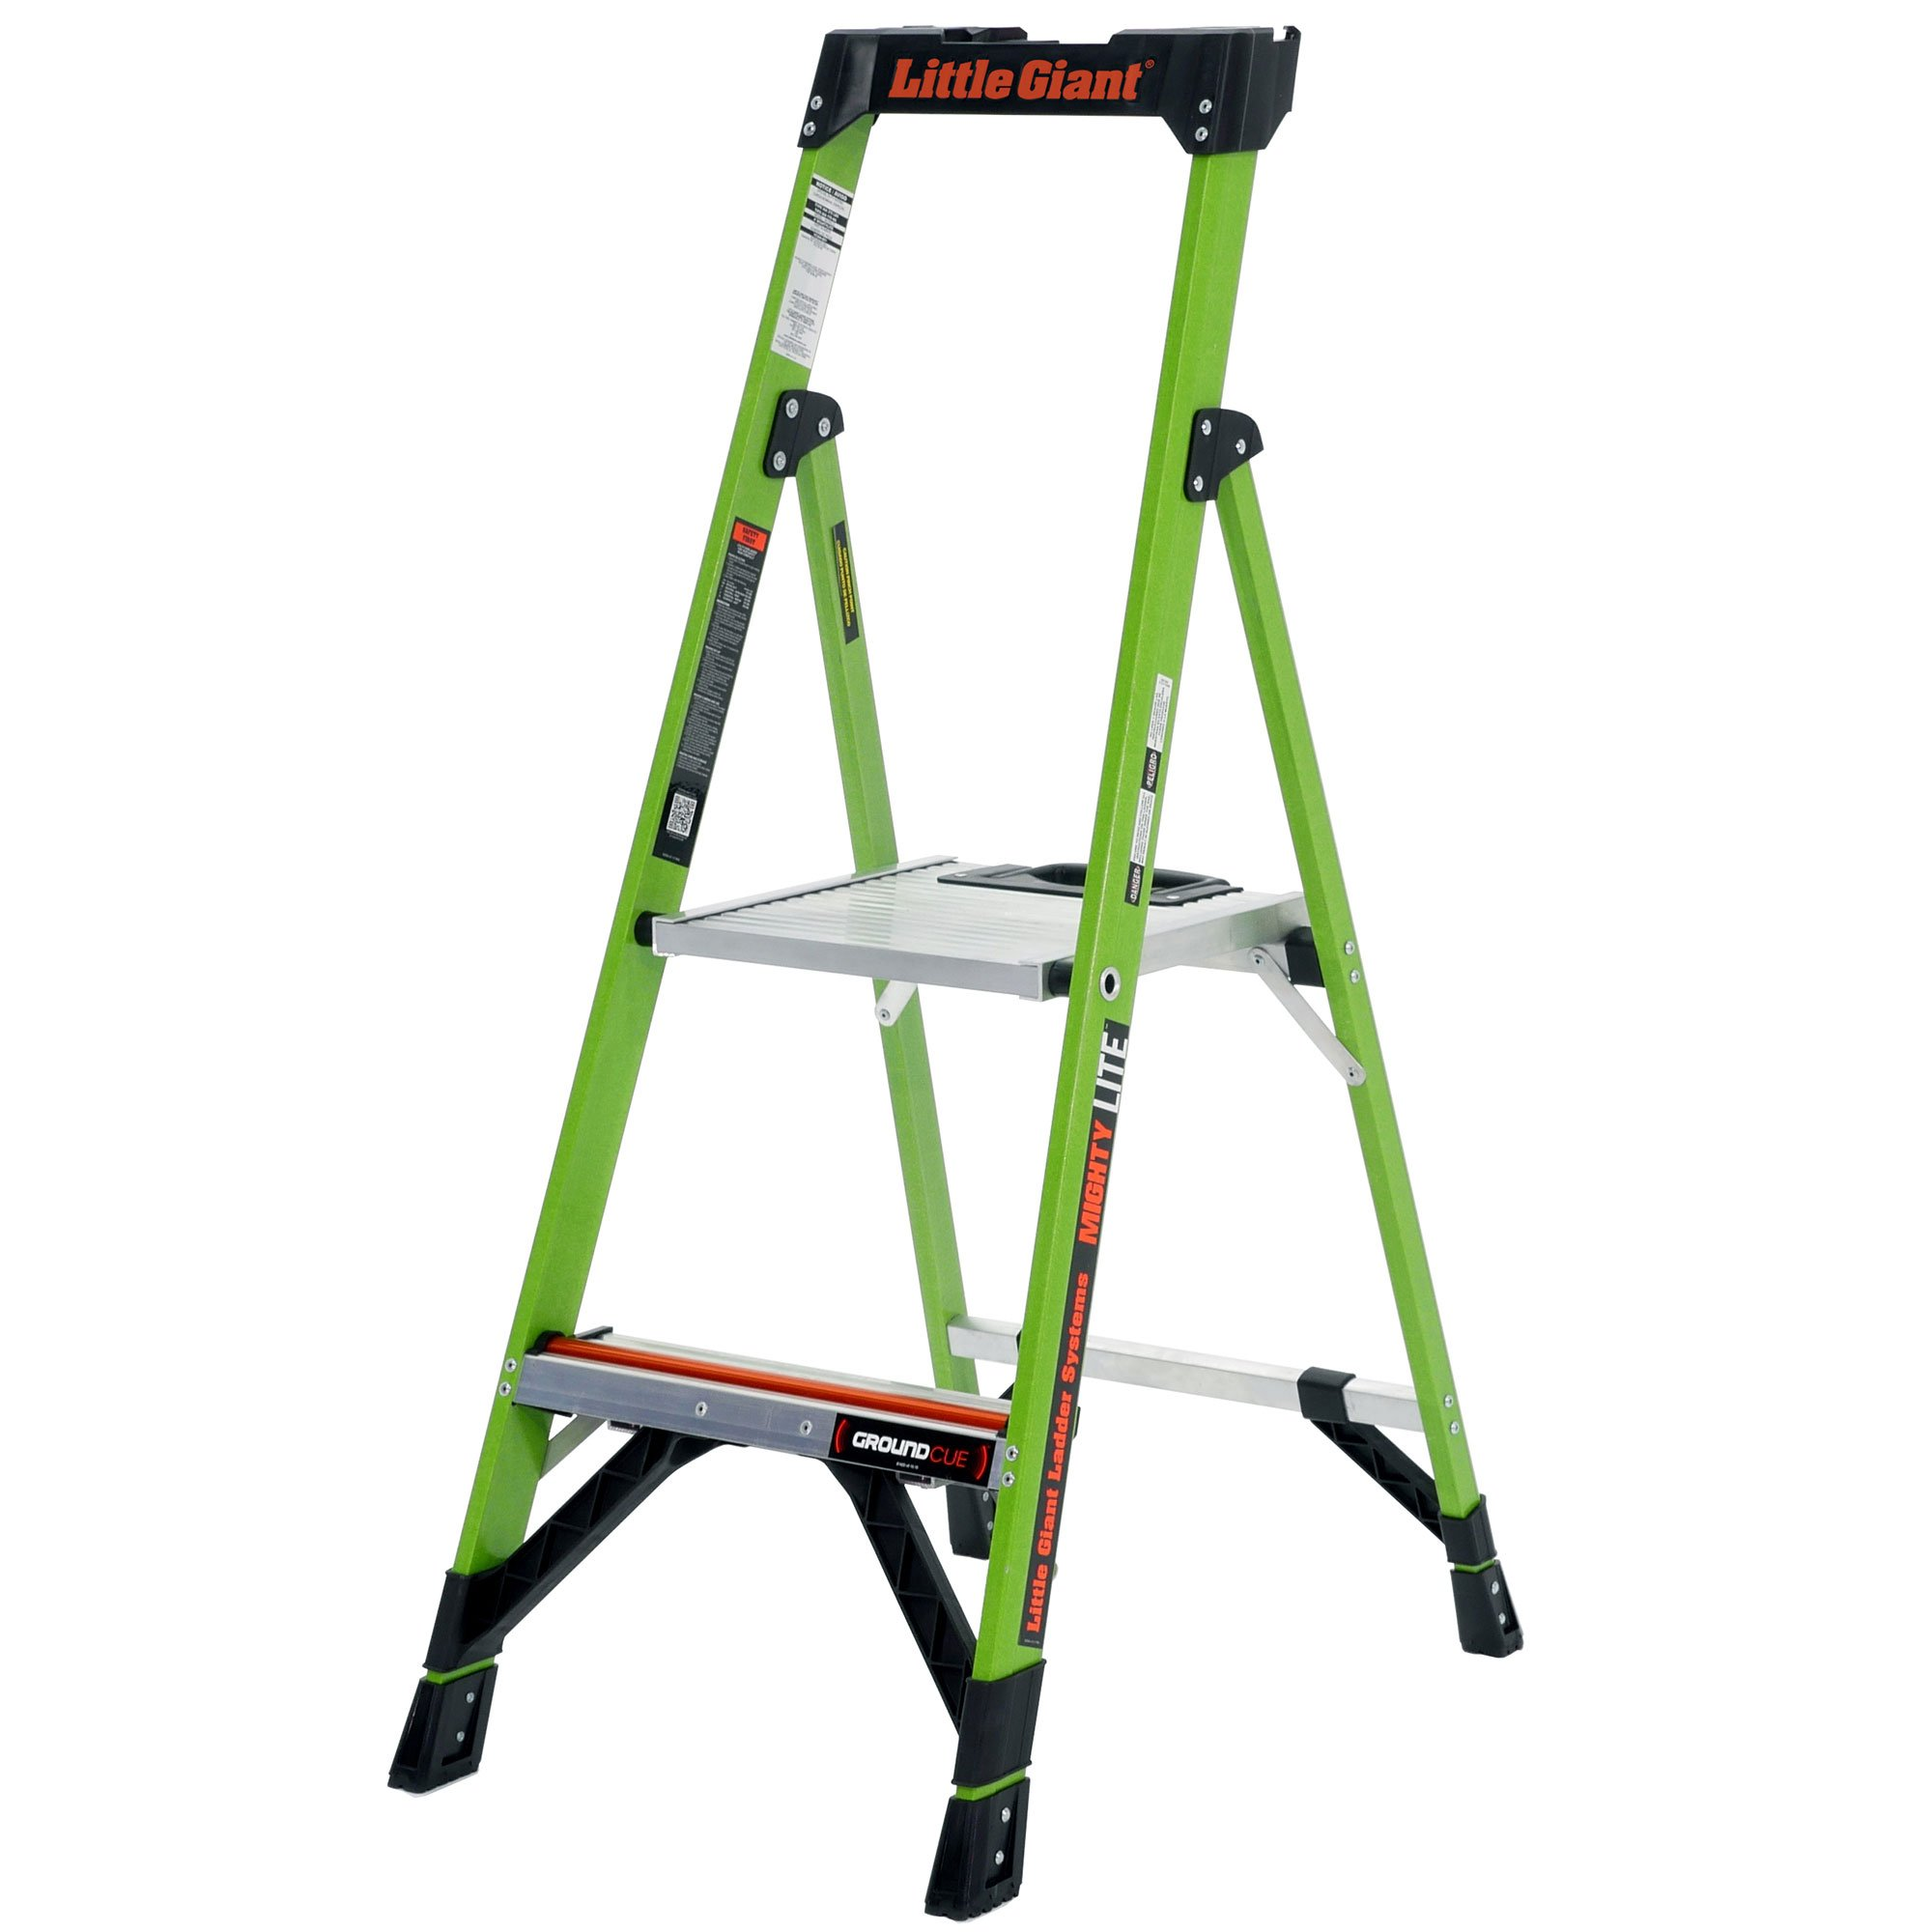 Little Giant Ladder Systems 15364-001 Mightylite 4 4, 4' IA 4 Step Ladder by Little Giant Ladder Systems (Image #1)